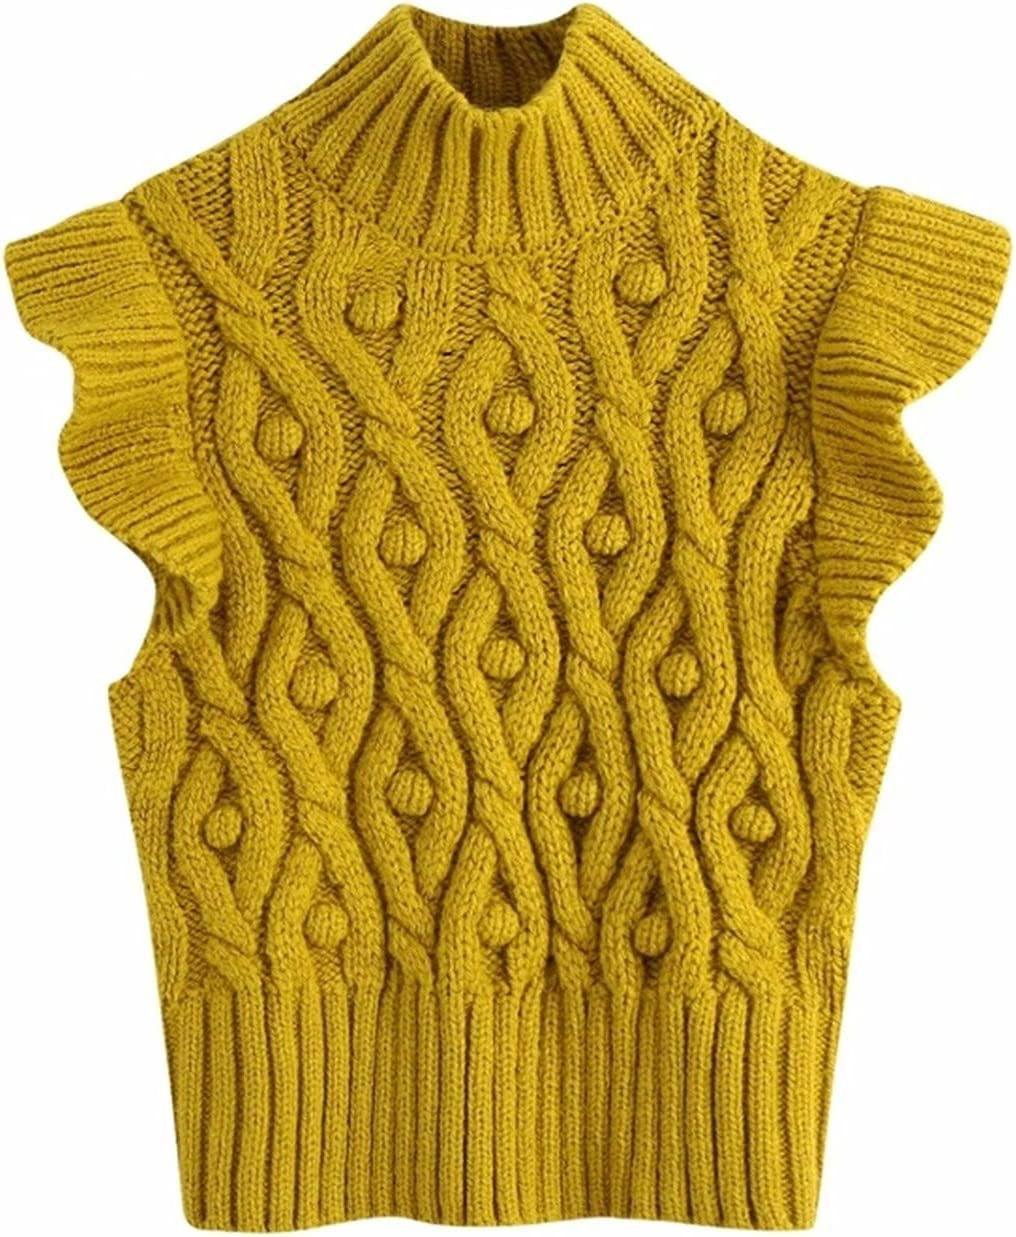 PJRYC Ladies Fashion Knitted Sweater Ladies Lace Sleeveless Casual Slim Vest Pullover (Color : As pic S420BB, Size : Medium)